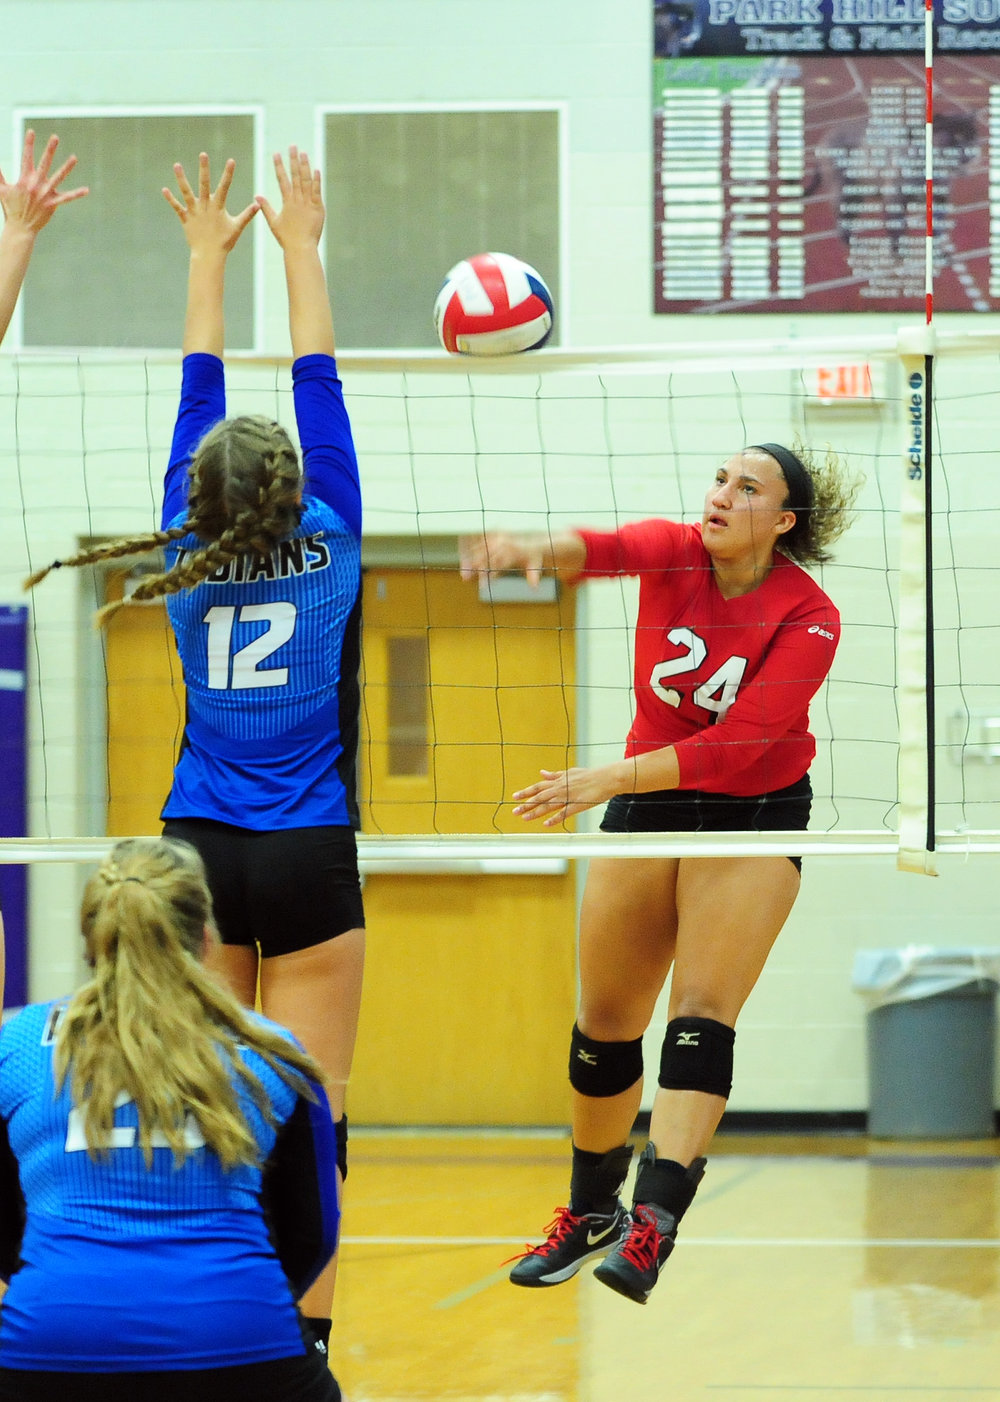 NICK INGRAM/Citizen photo Park Hill senior Tyah Barnett hits a spike during a Class 4 District 16 match with St. Joseph Central on Monday, Oct. 17 at Park Hill South High School in Riverside, Mo.